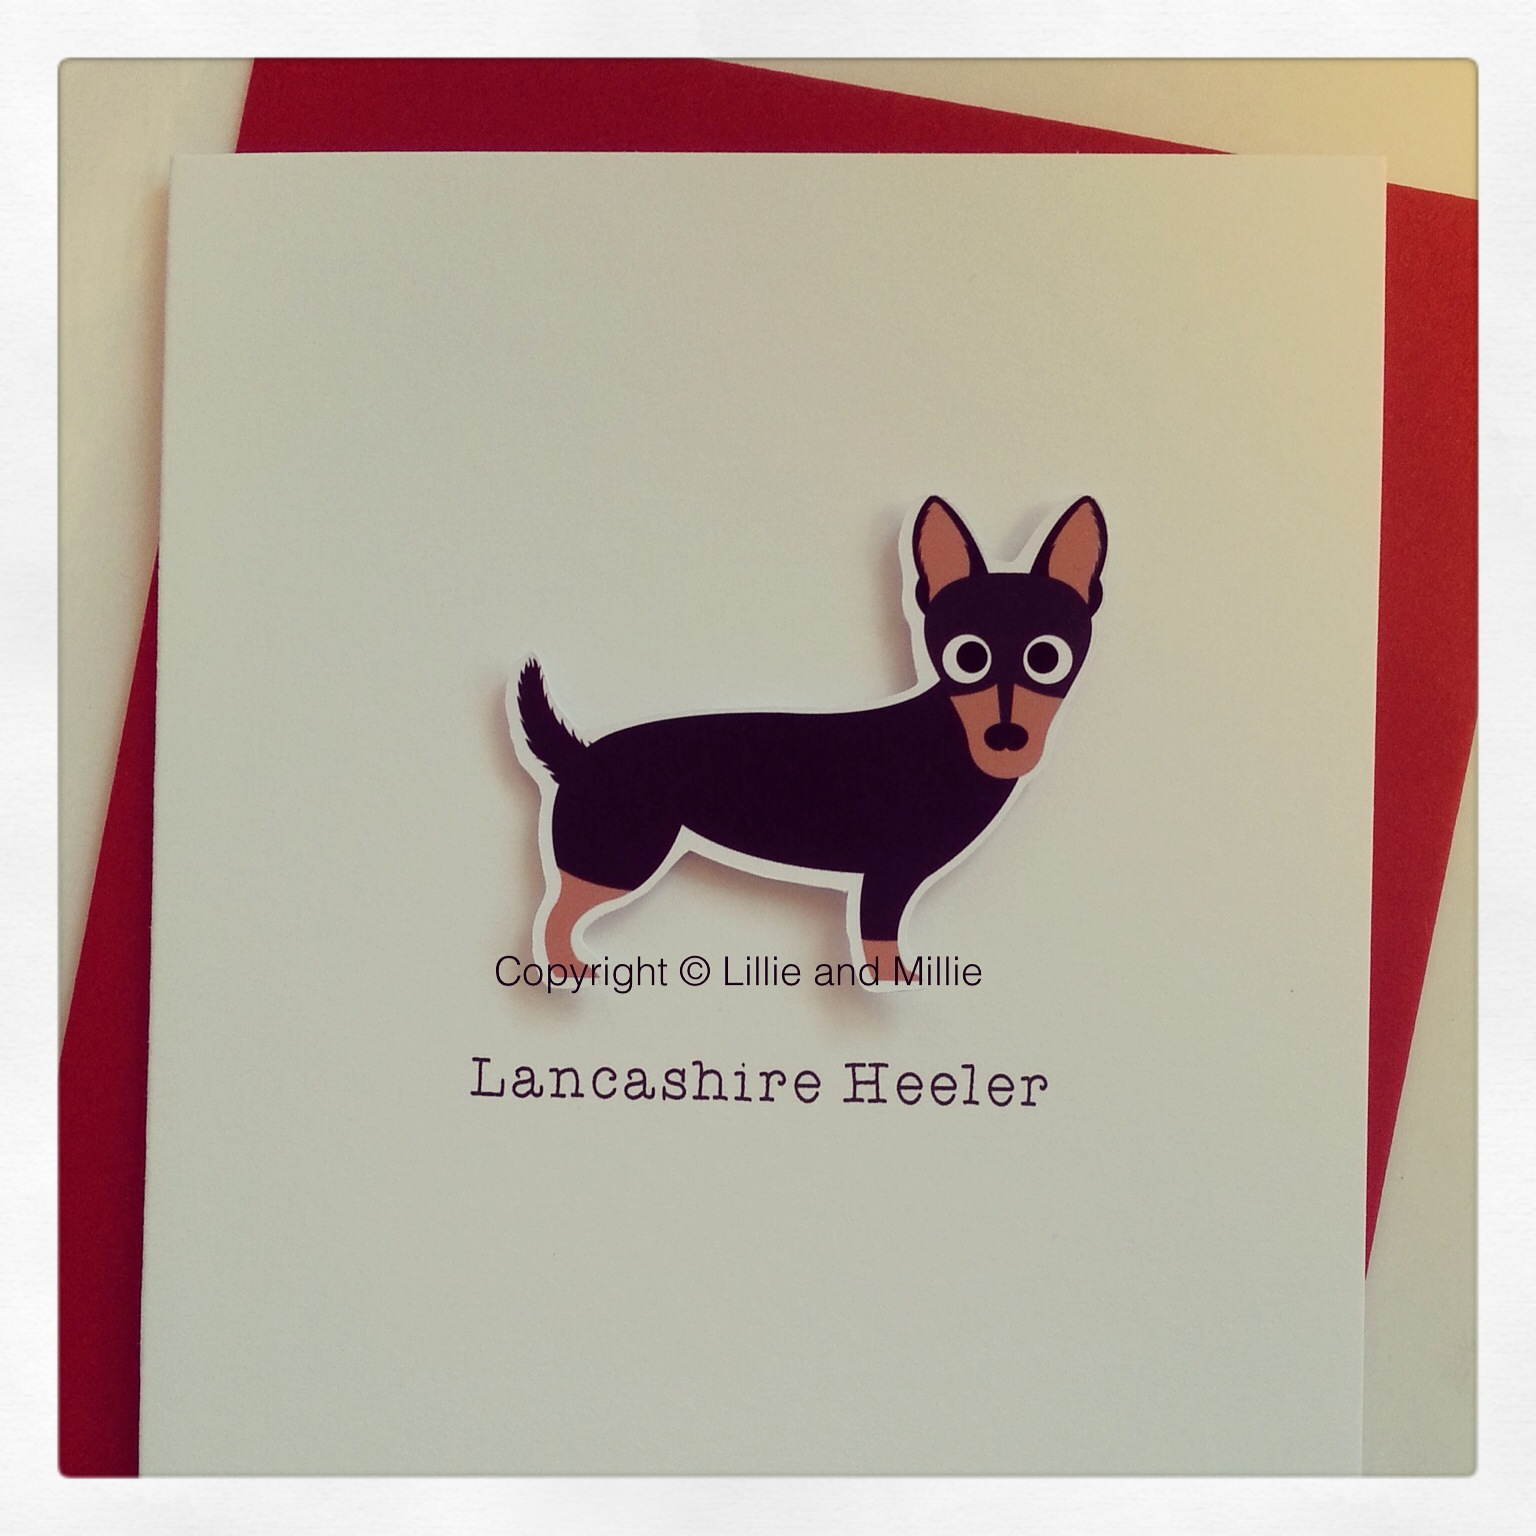 Cute and Cuddly Dapple Dachshund Greetings Card